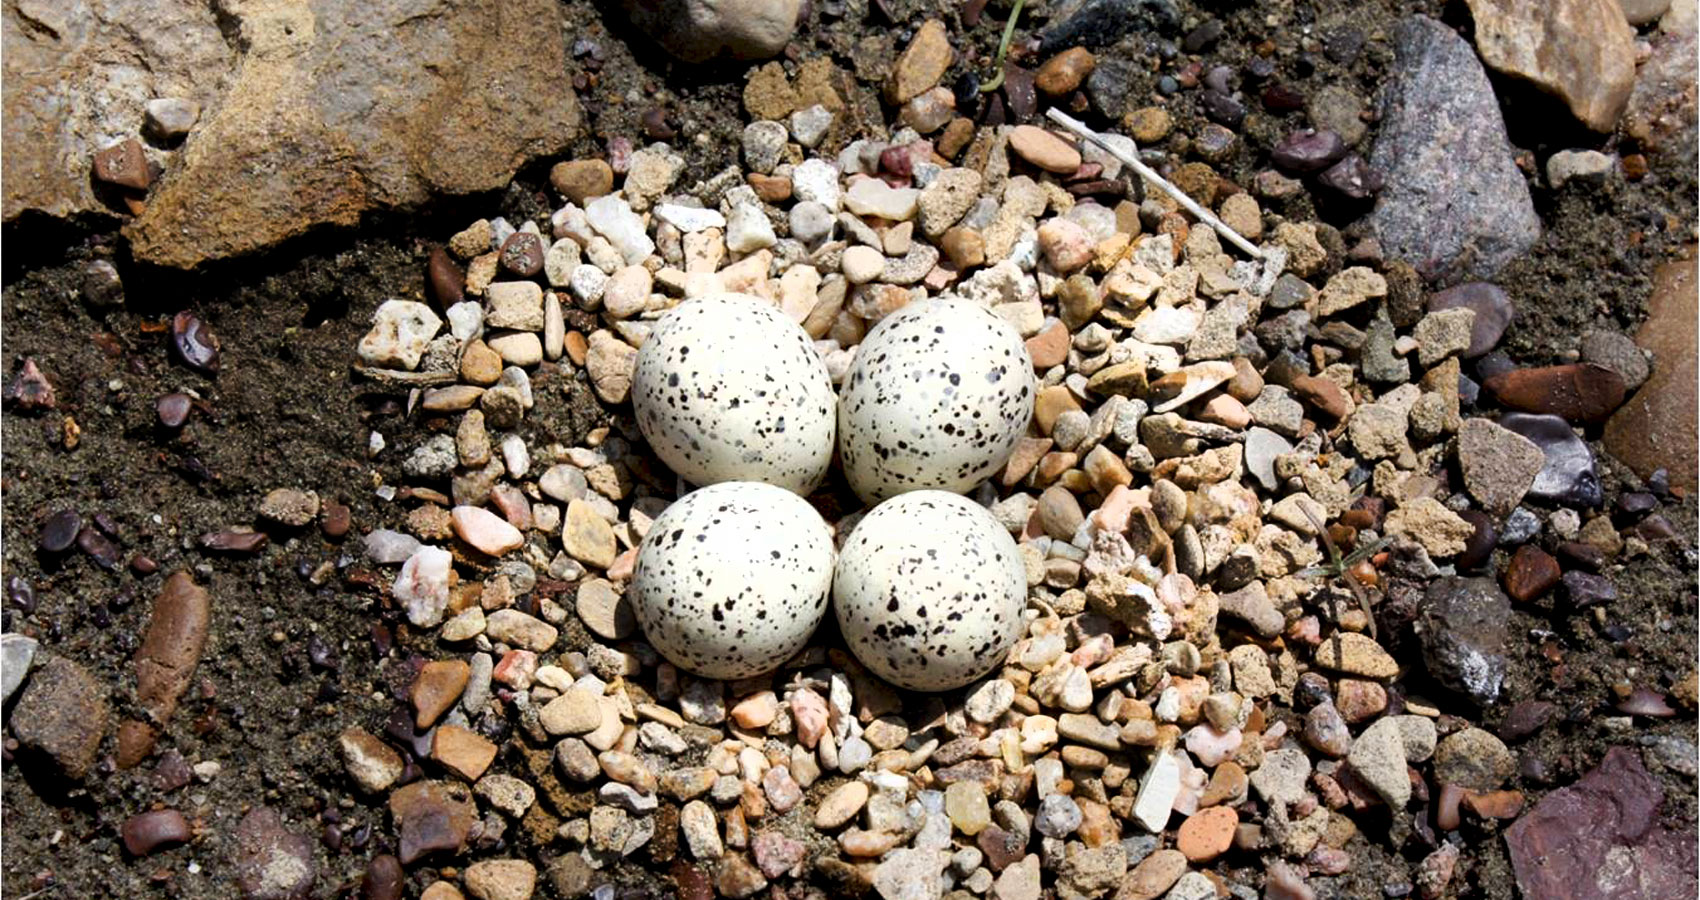 The Plover's Nest, by Bob Jensen at Spillwords.com